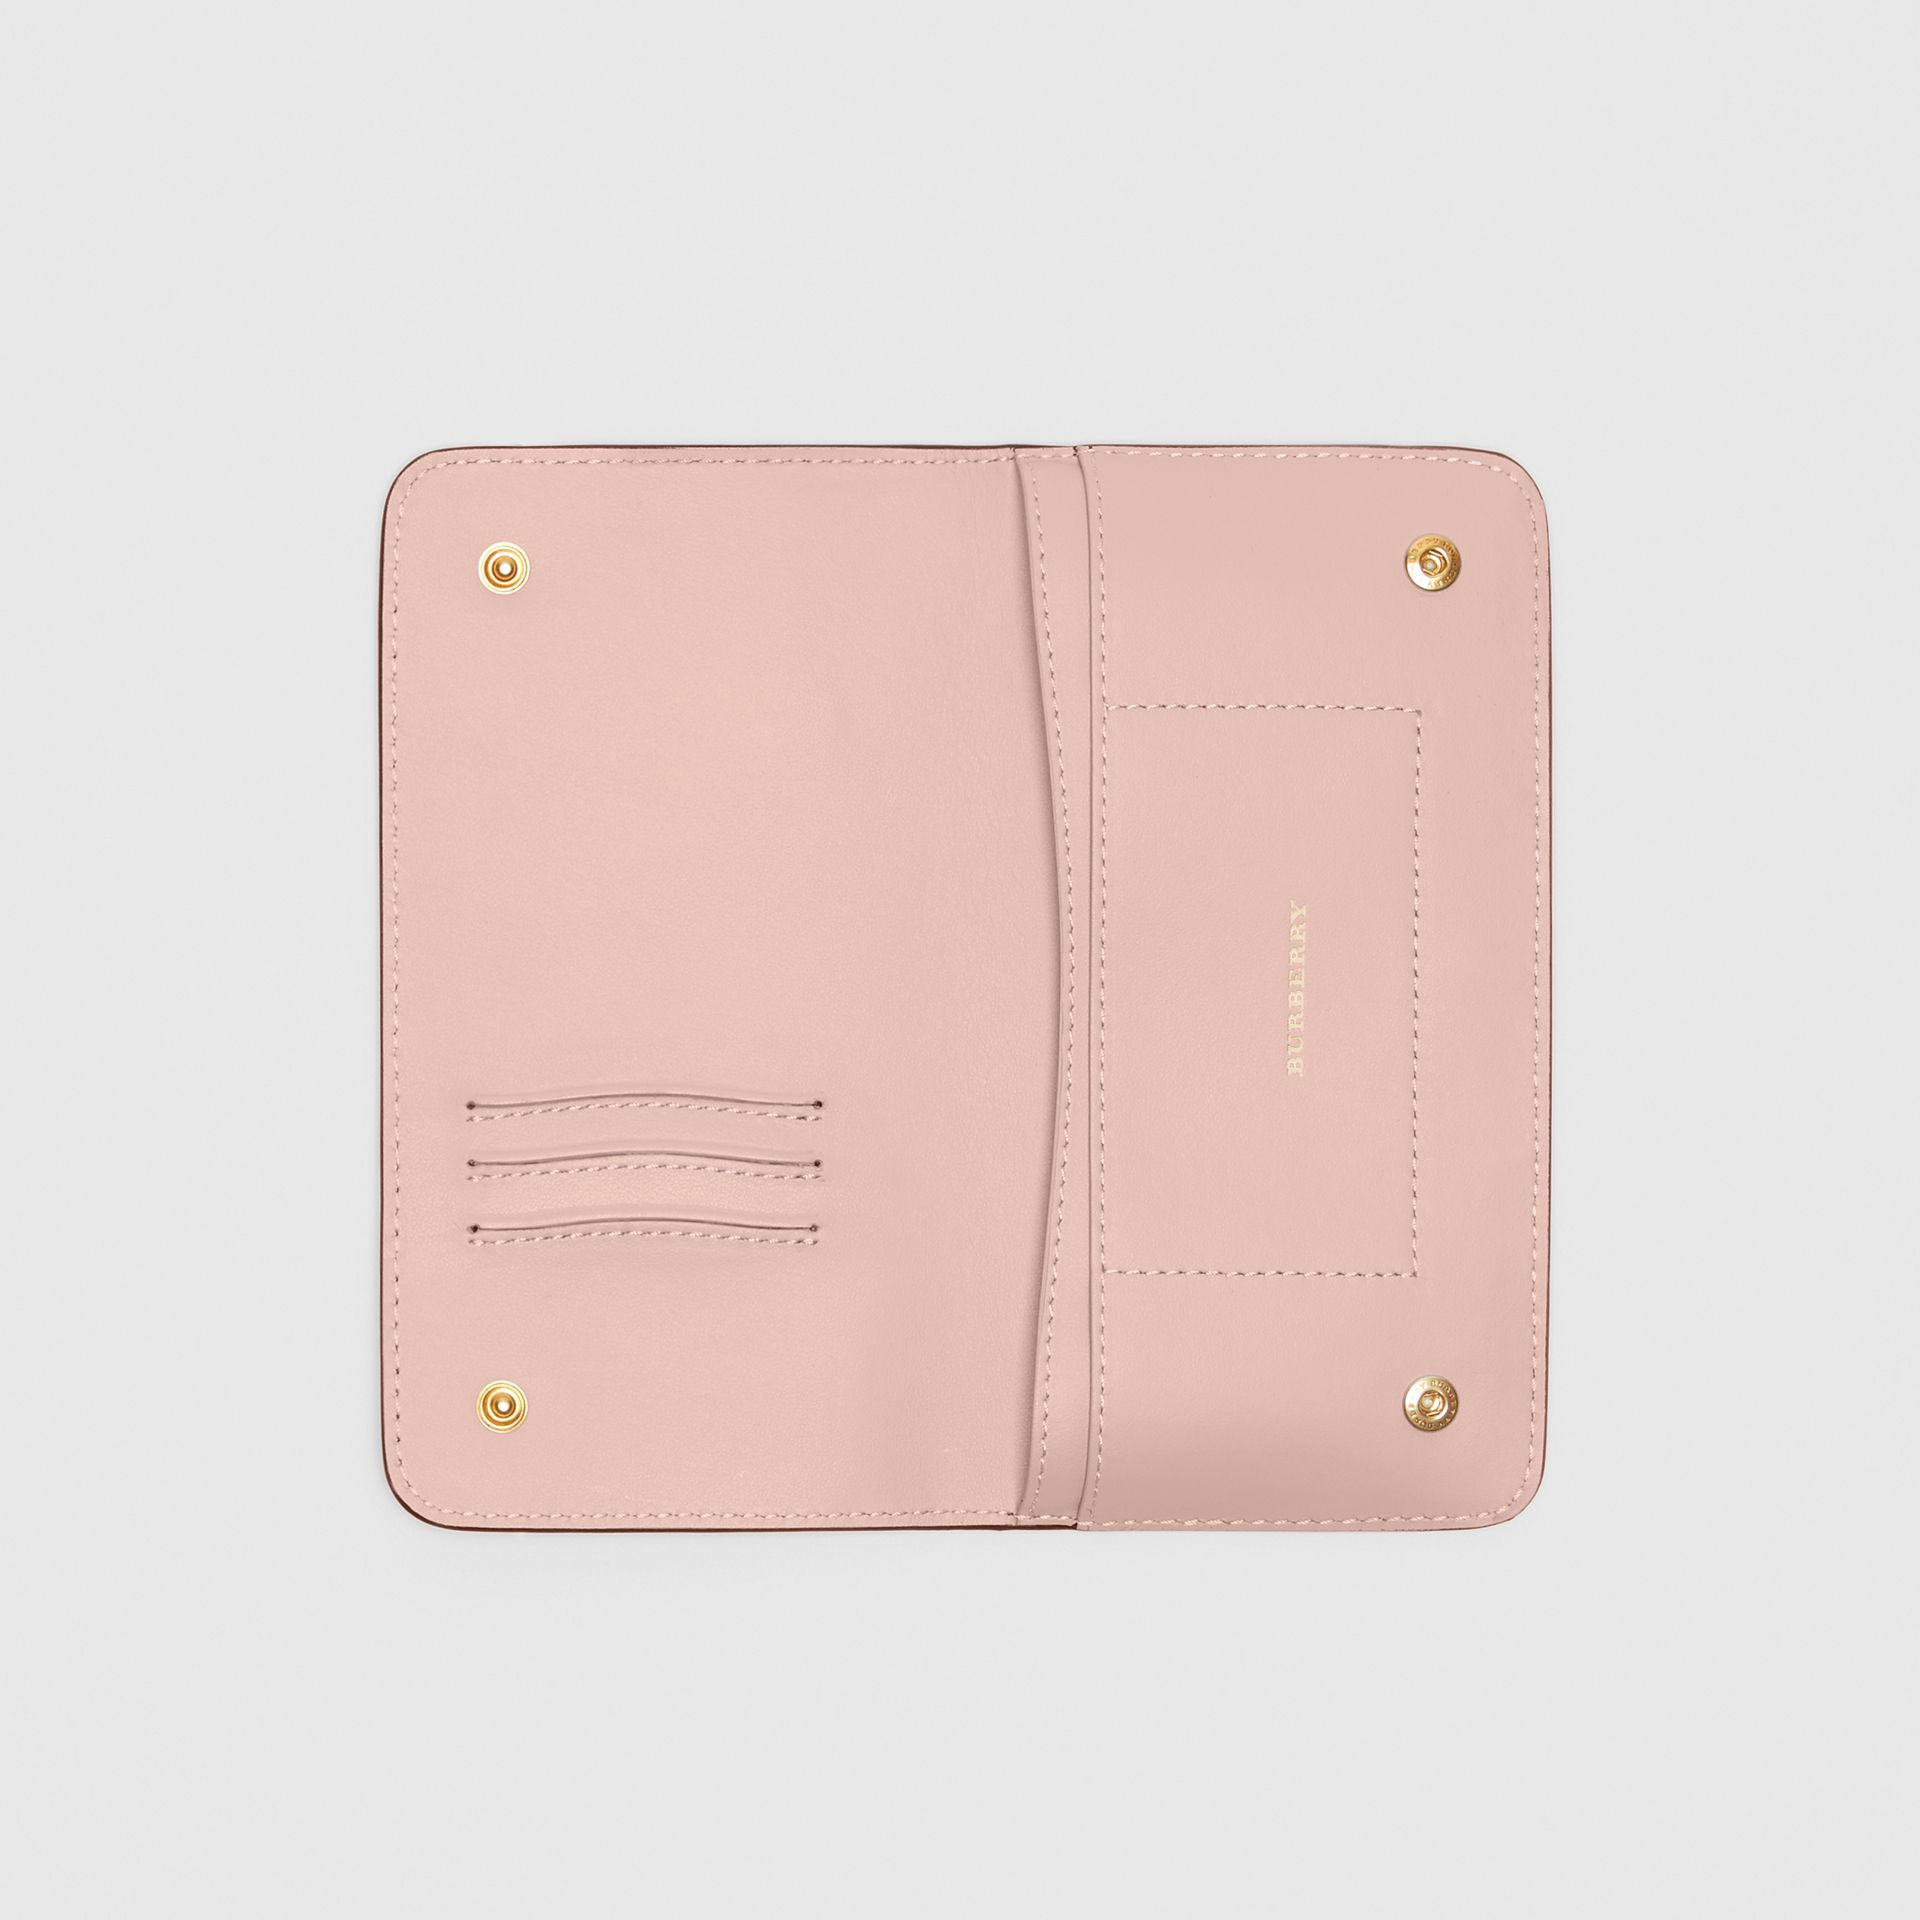 Leather Phone Wallet in Ash Rose - Women | Burberry - gallery image 2